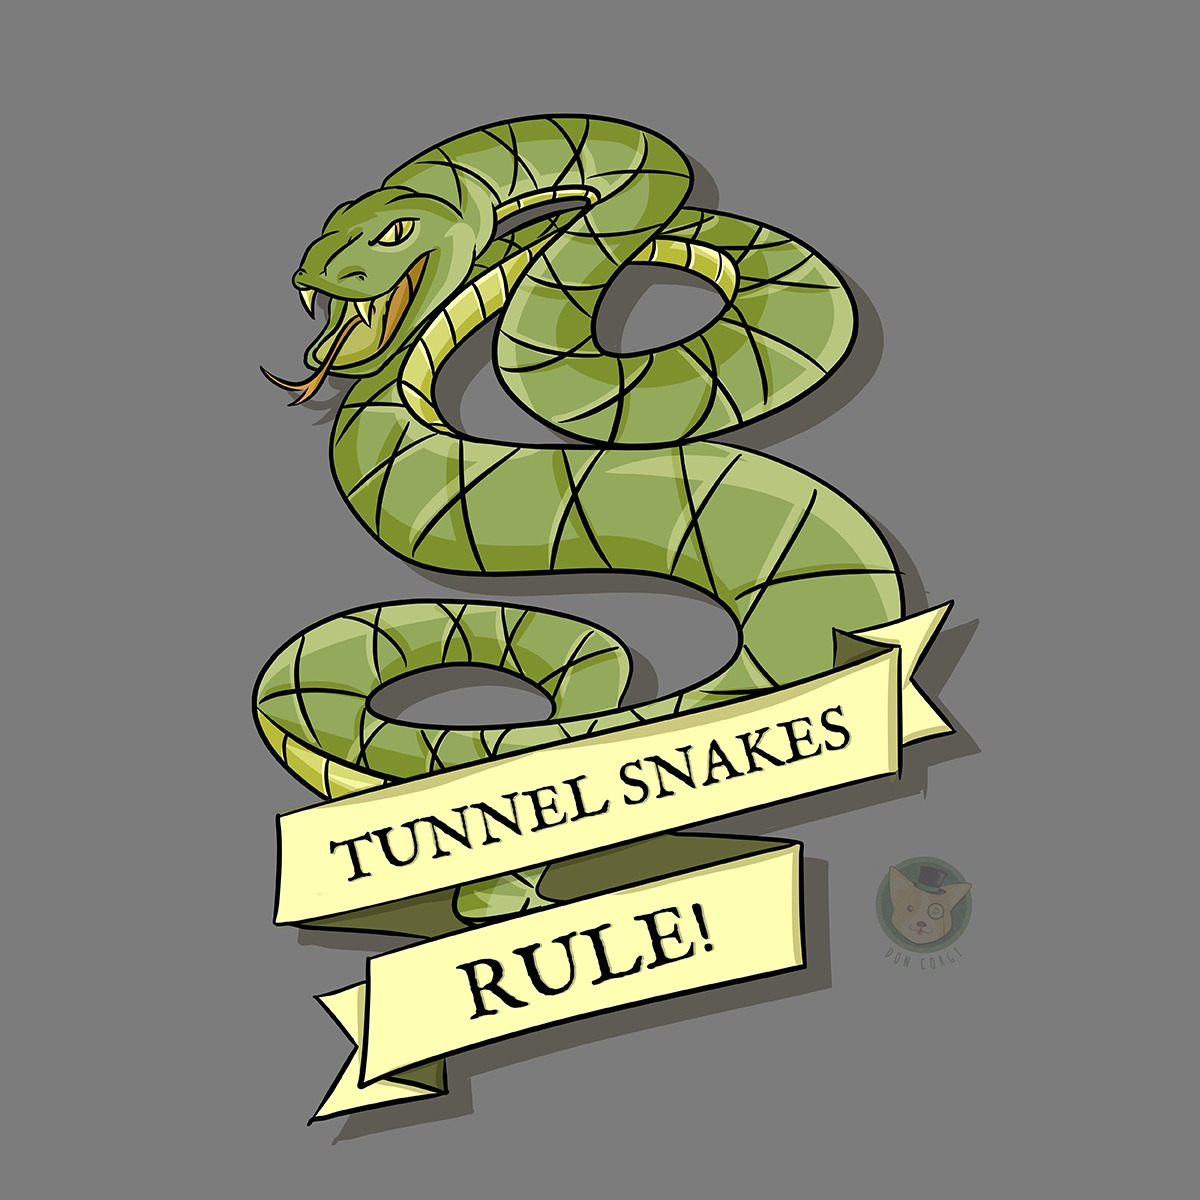 fallout 4, illustration, fallout 3, gaming, tunnel snakes rule